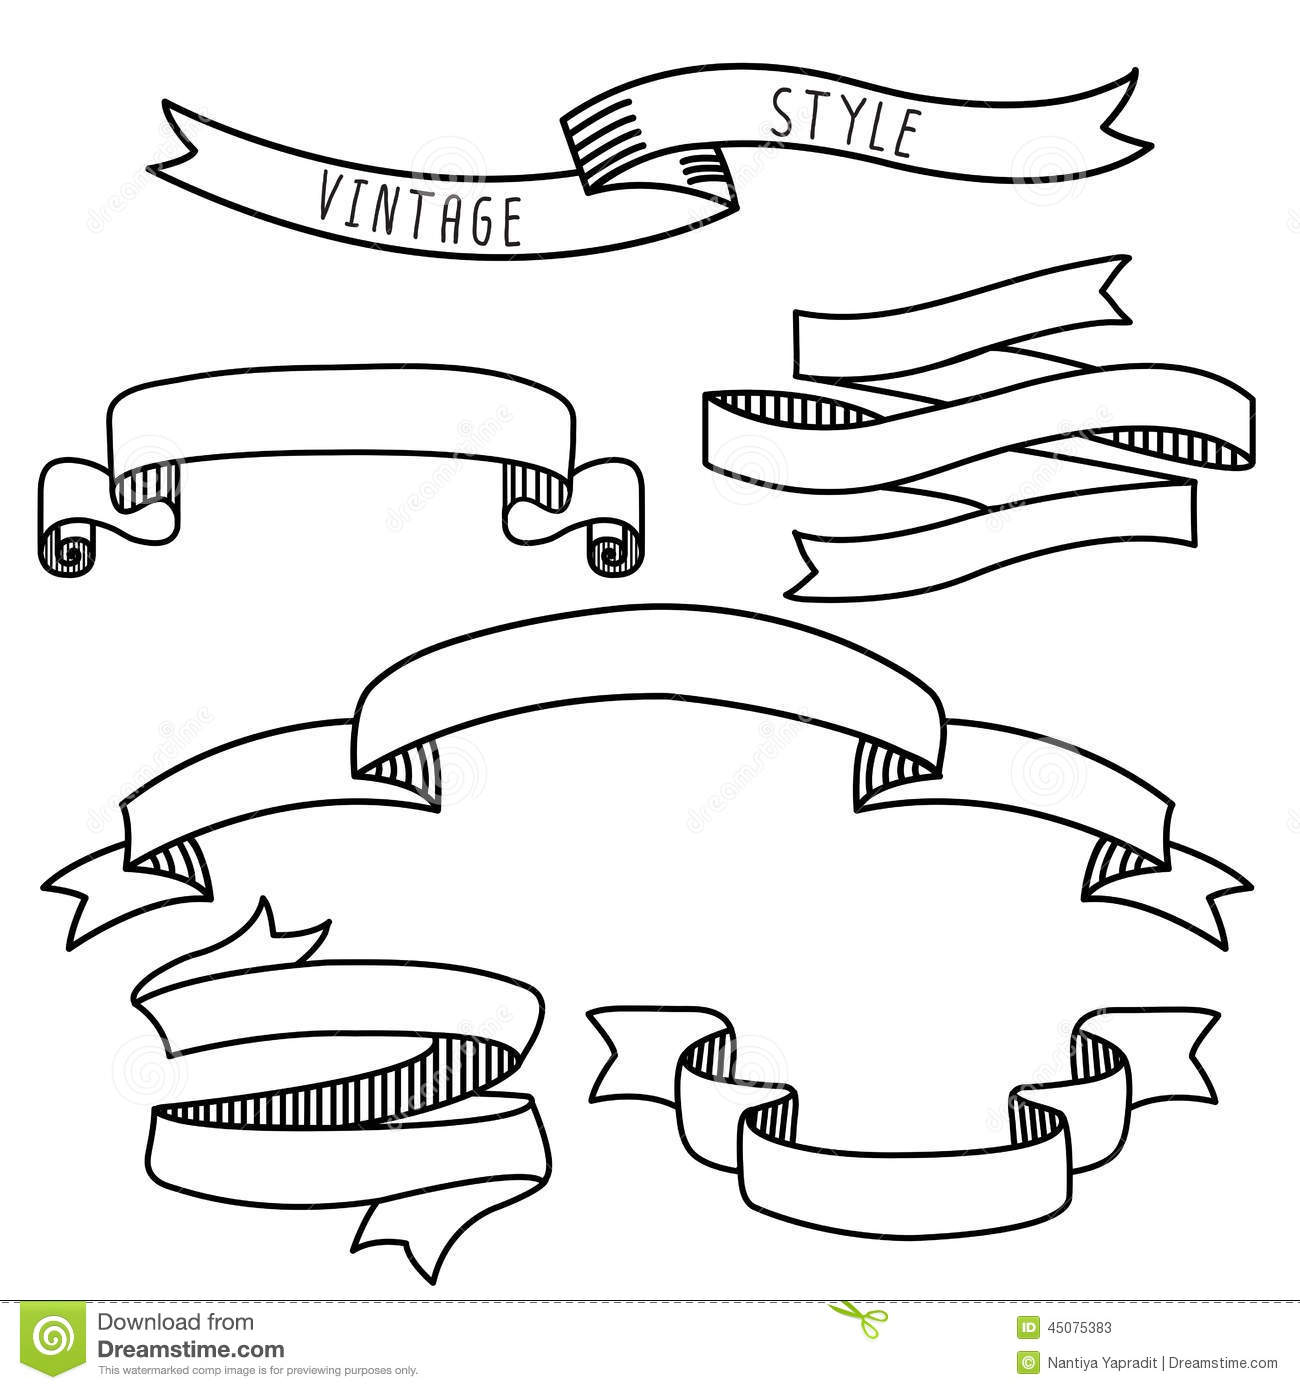 Vintage Label Design Elements Banners And Ribbons Stock